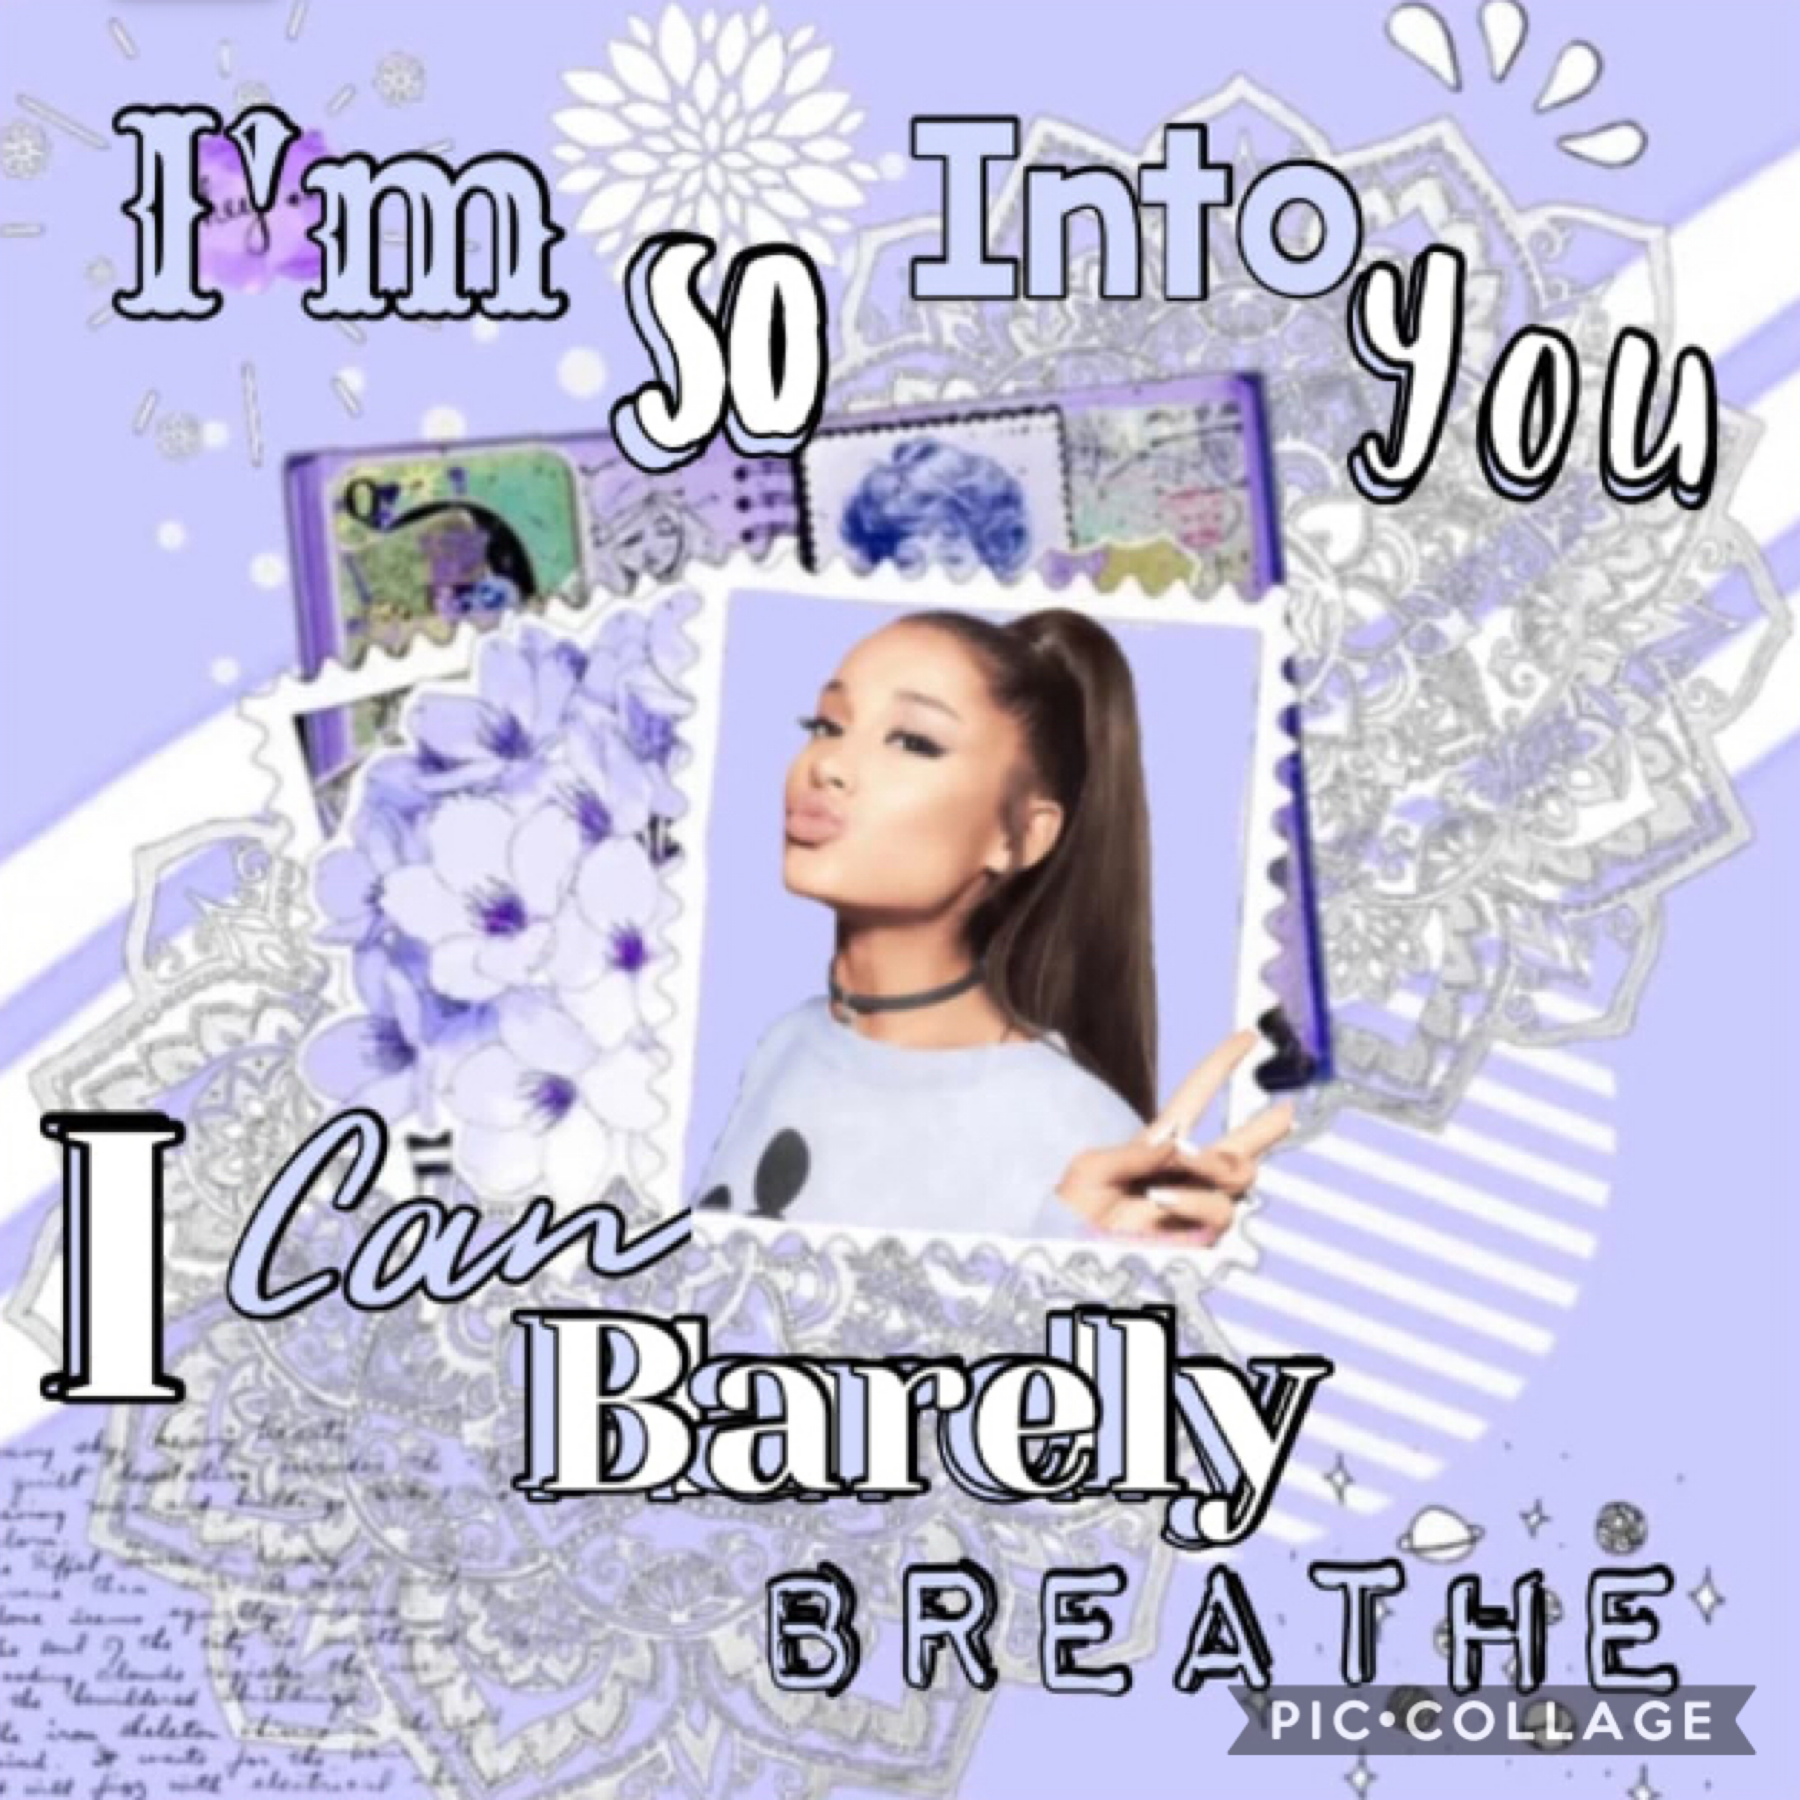 💜tap💜  Collab with my bestie @aesthetic_sunflower2009 GO FOLLOW HER & get her too 500 followers 🖤  I did the bg and she did the wonderful text 💜🖤